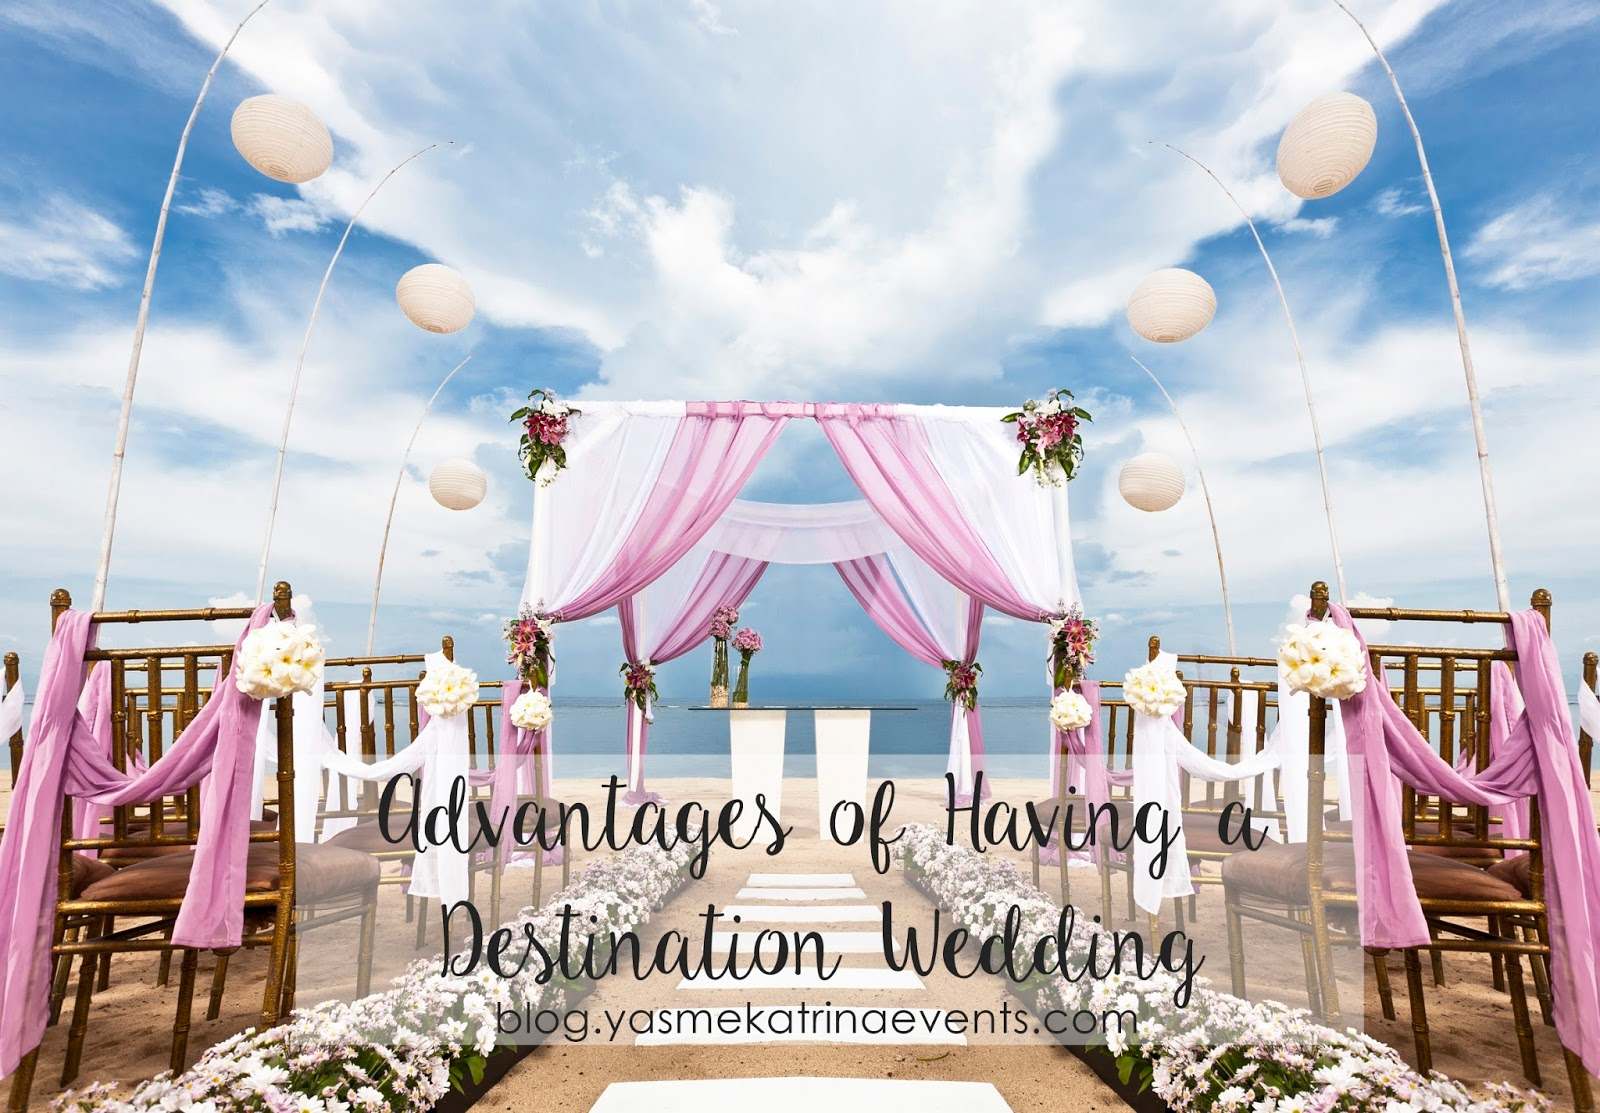 As A Destination Wedding Planner I Find That Weddings Provide Certain Degree Of Adventure And Intimacy Can Appeal To Many New Couples